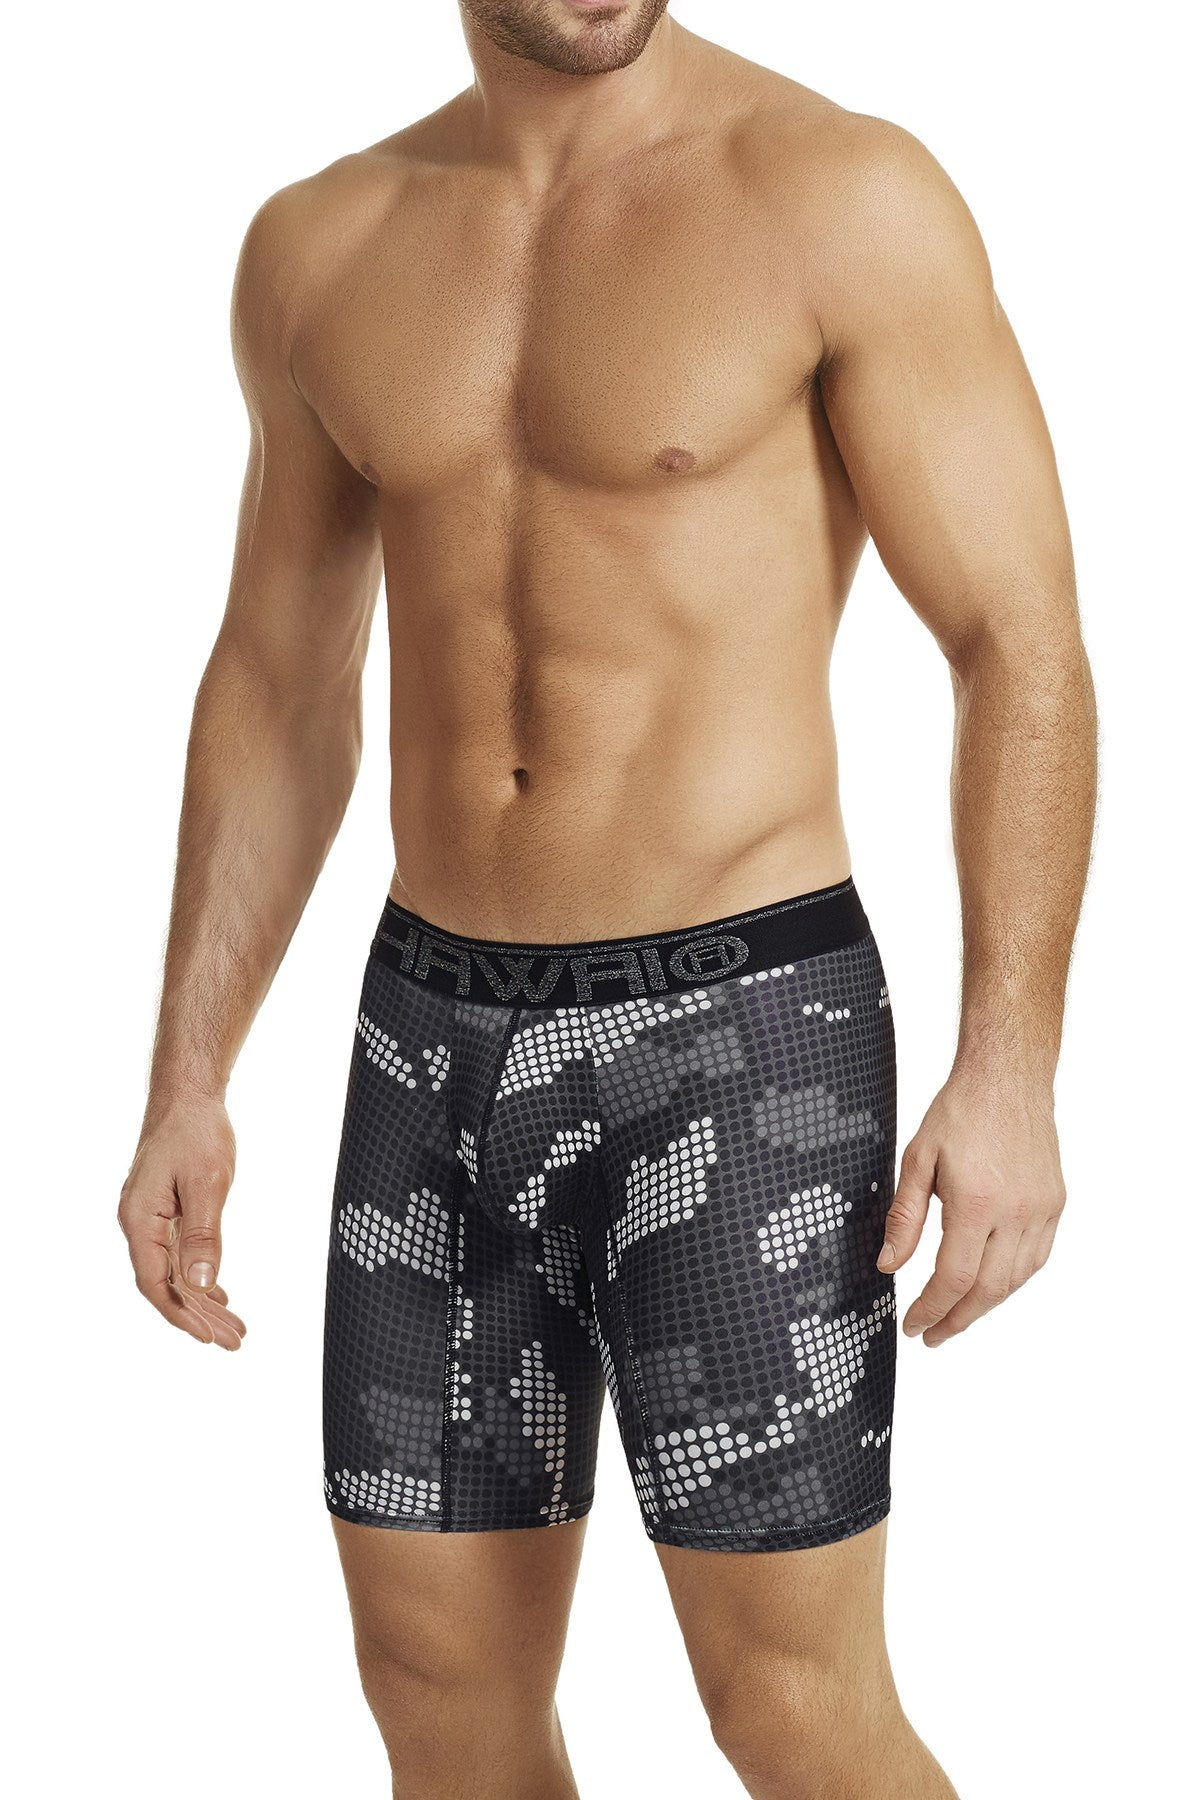 Hawai Black Digital Camo Print Boxer Brief